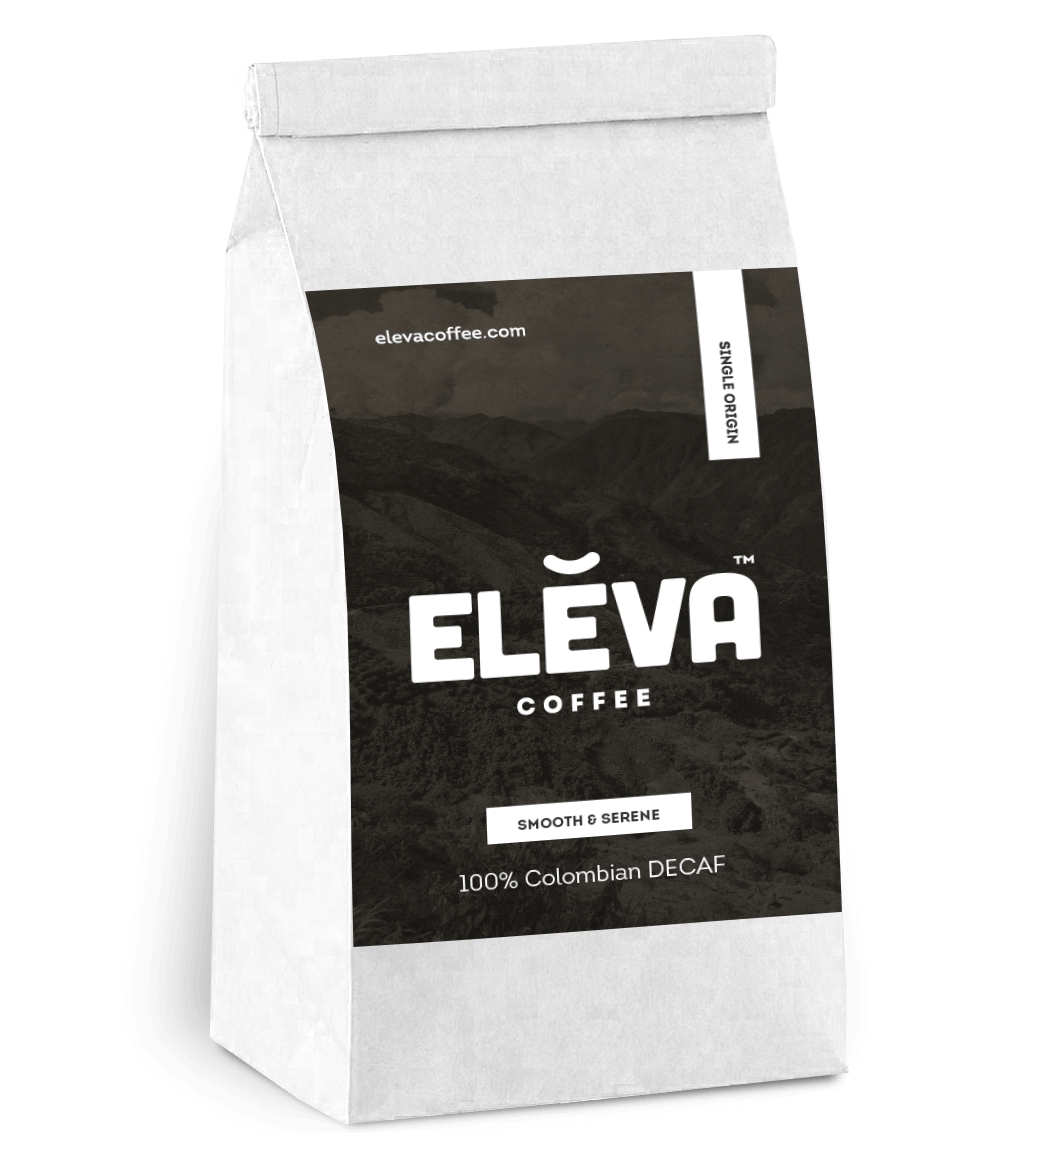 Colombia—Decaf